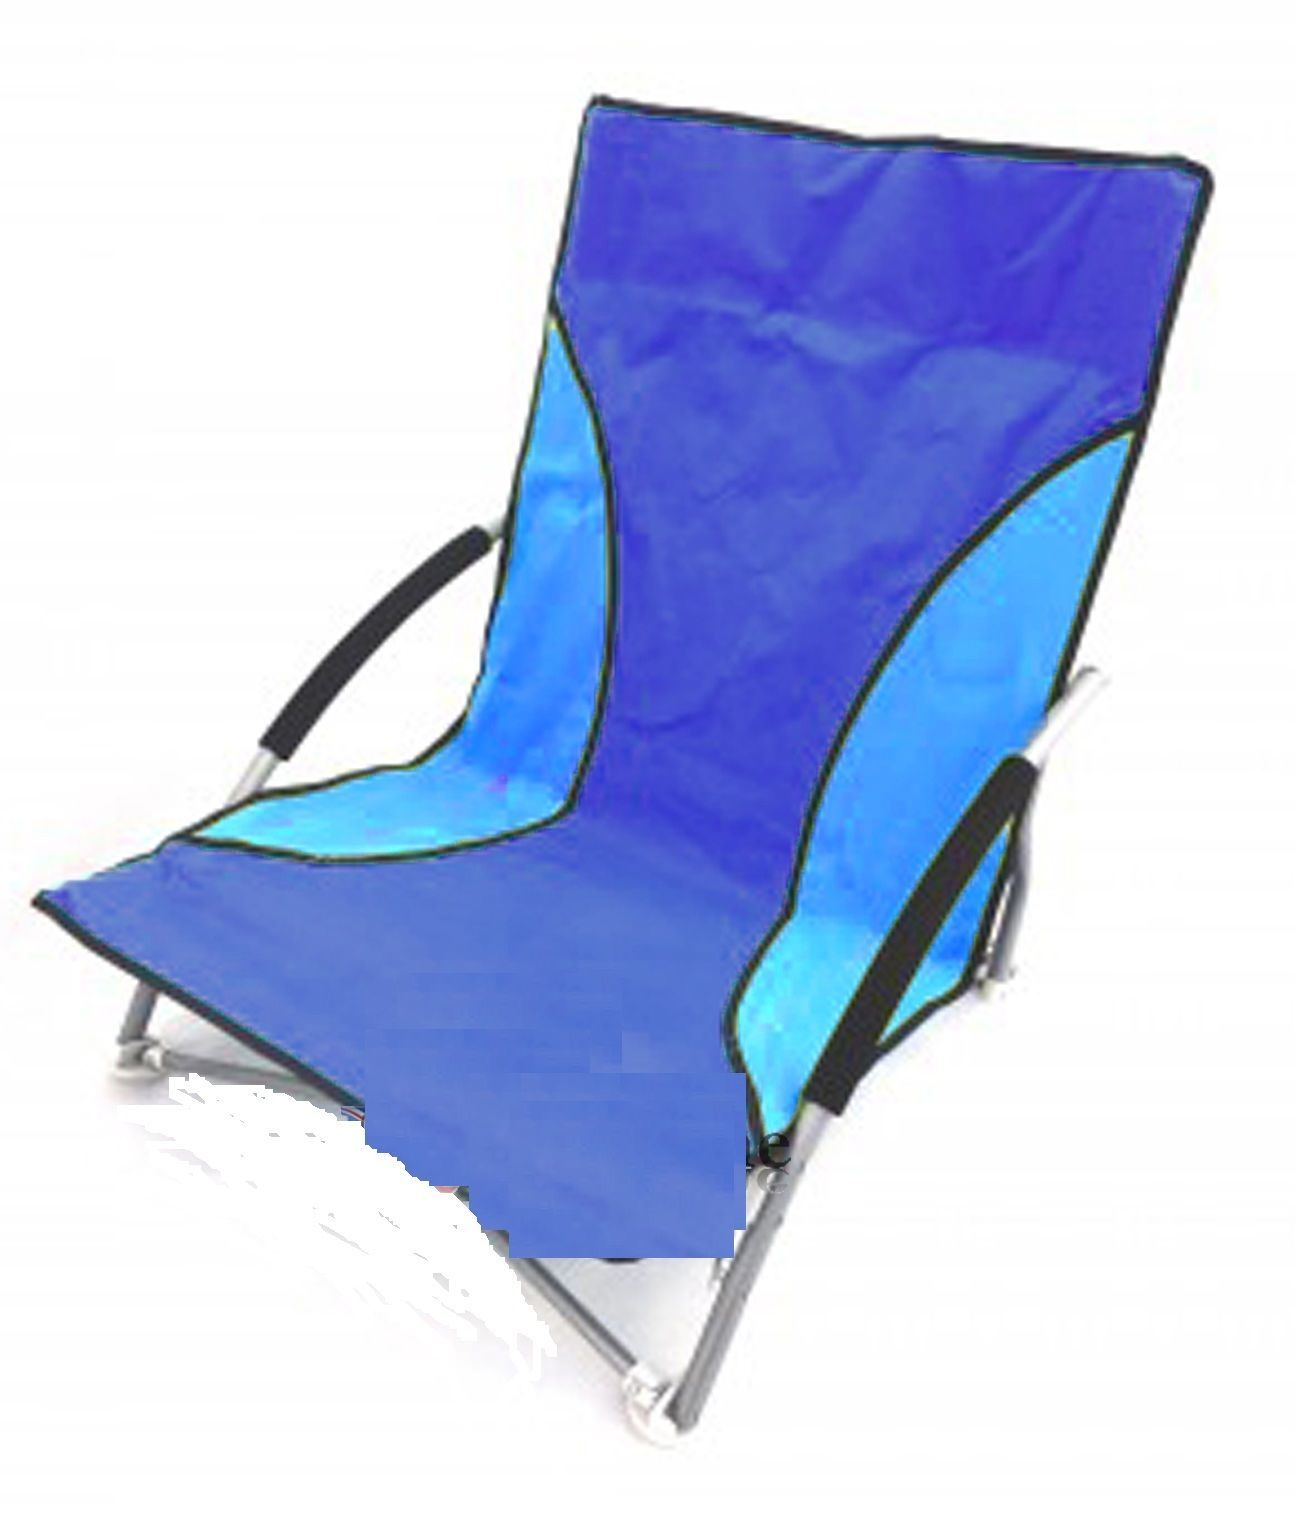 New Low Folding Beach Chair Camping Festival Beach Pool Picnic Deckchair